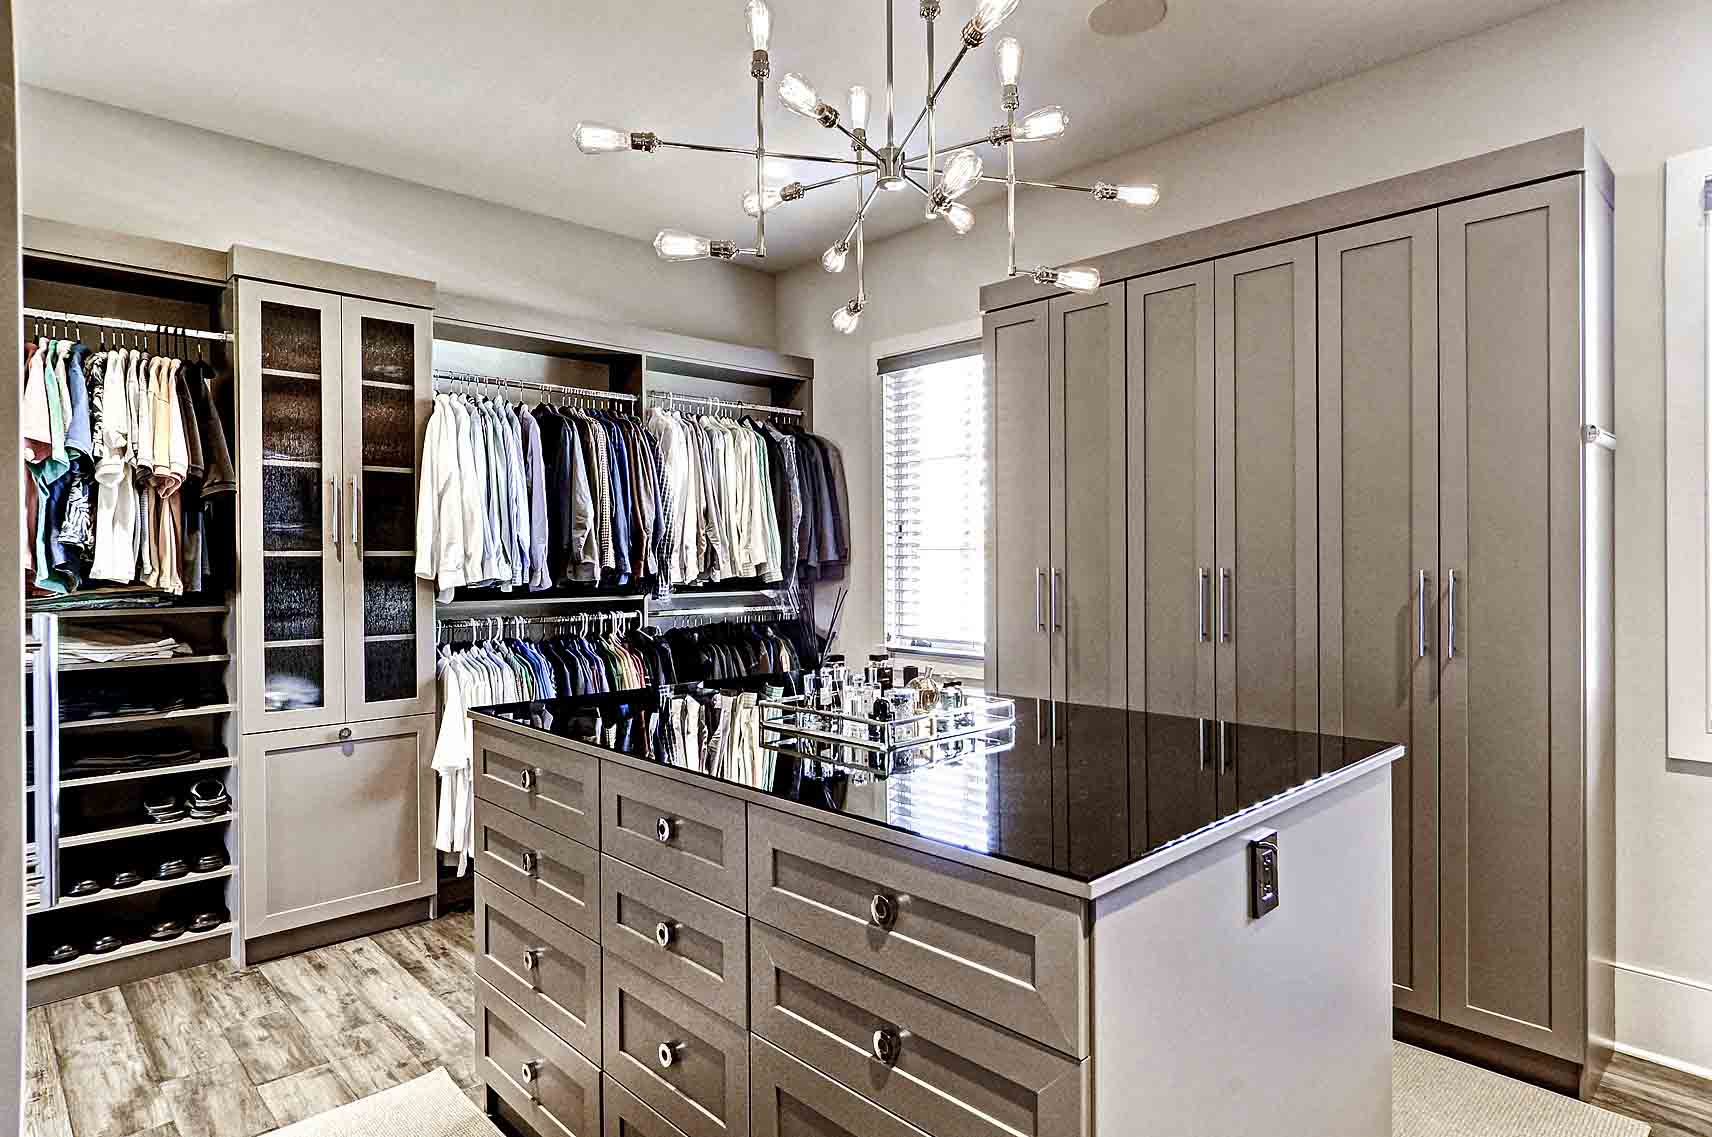 Organized walk-in closet with center island